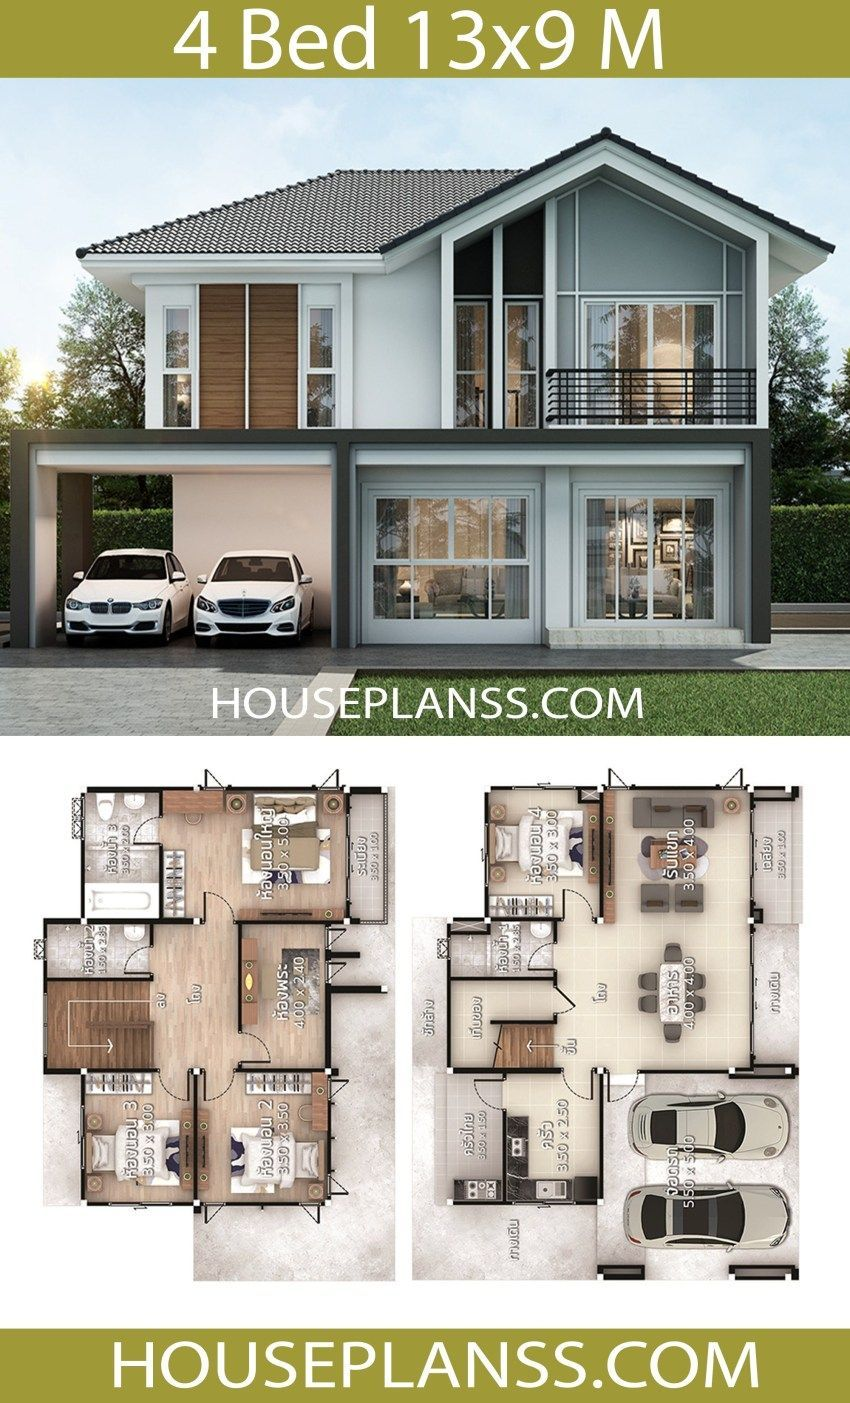 House Plans Design Idea 13x9 With 4 Bedrooms House Plans Sam Kitchen Bedroom Homedecori House Construction Plan Small Modern House Plans Small House Plans